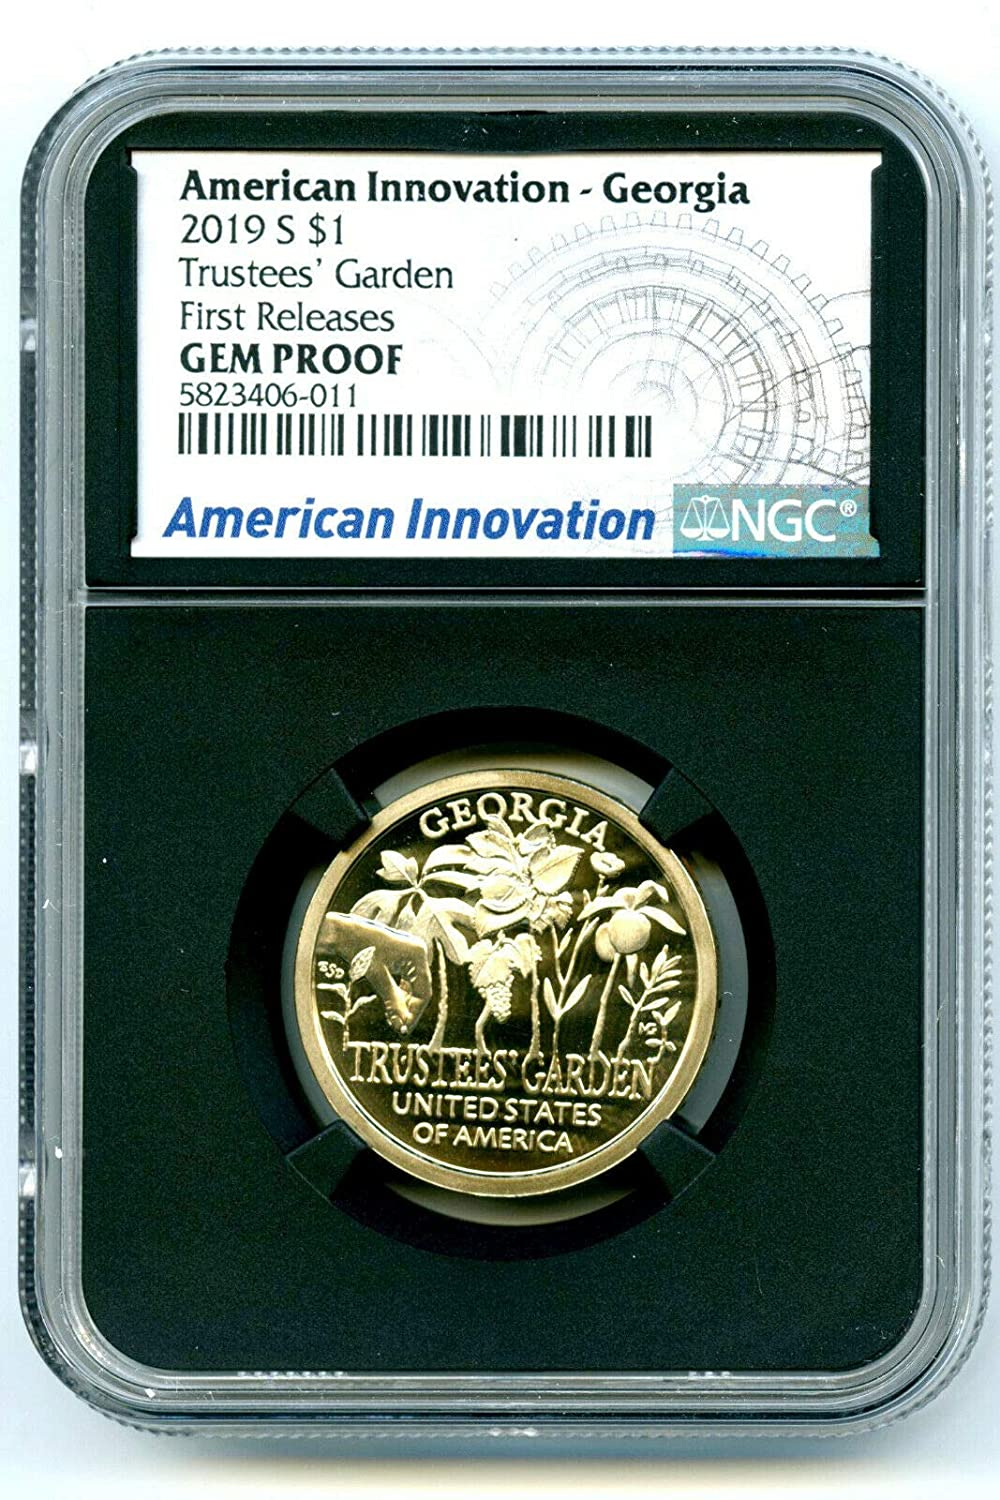 2019 S American Innovation REVERSE PROOF COIN DELAWARE IN HAND